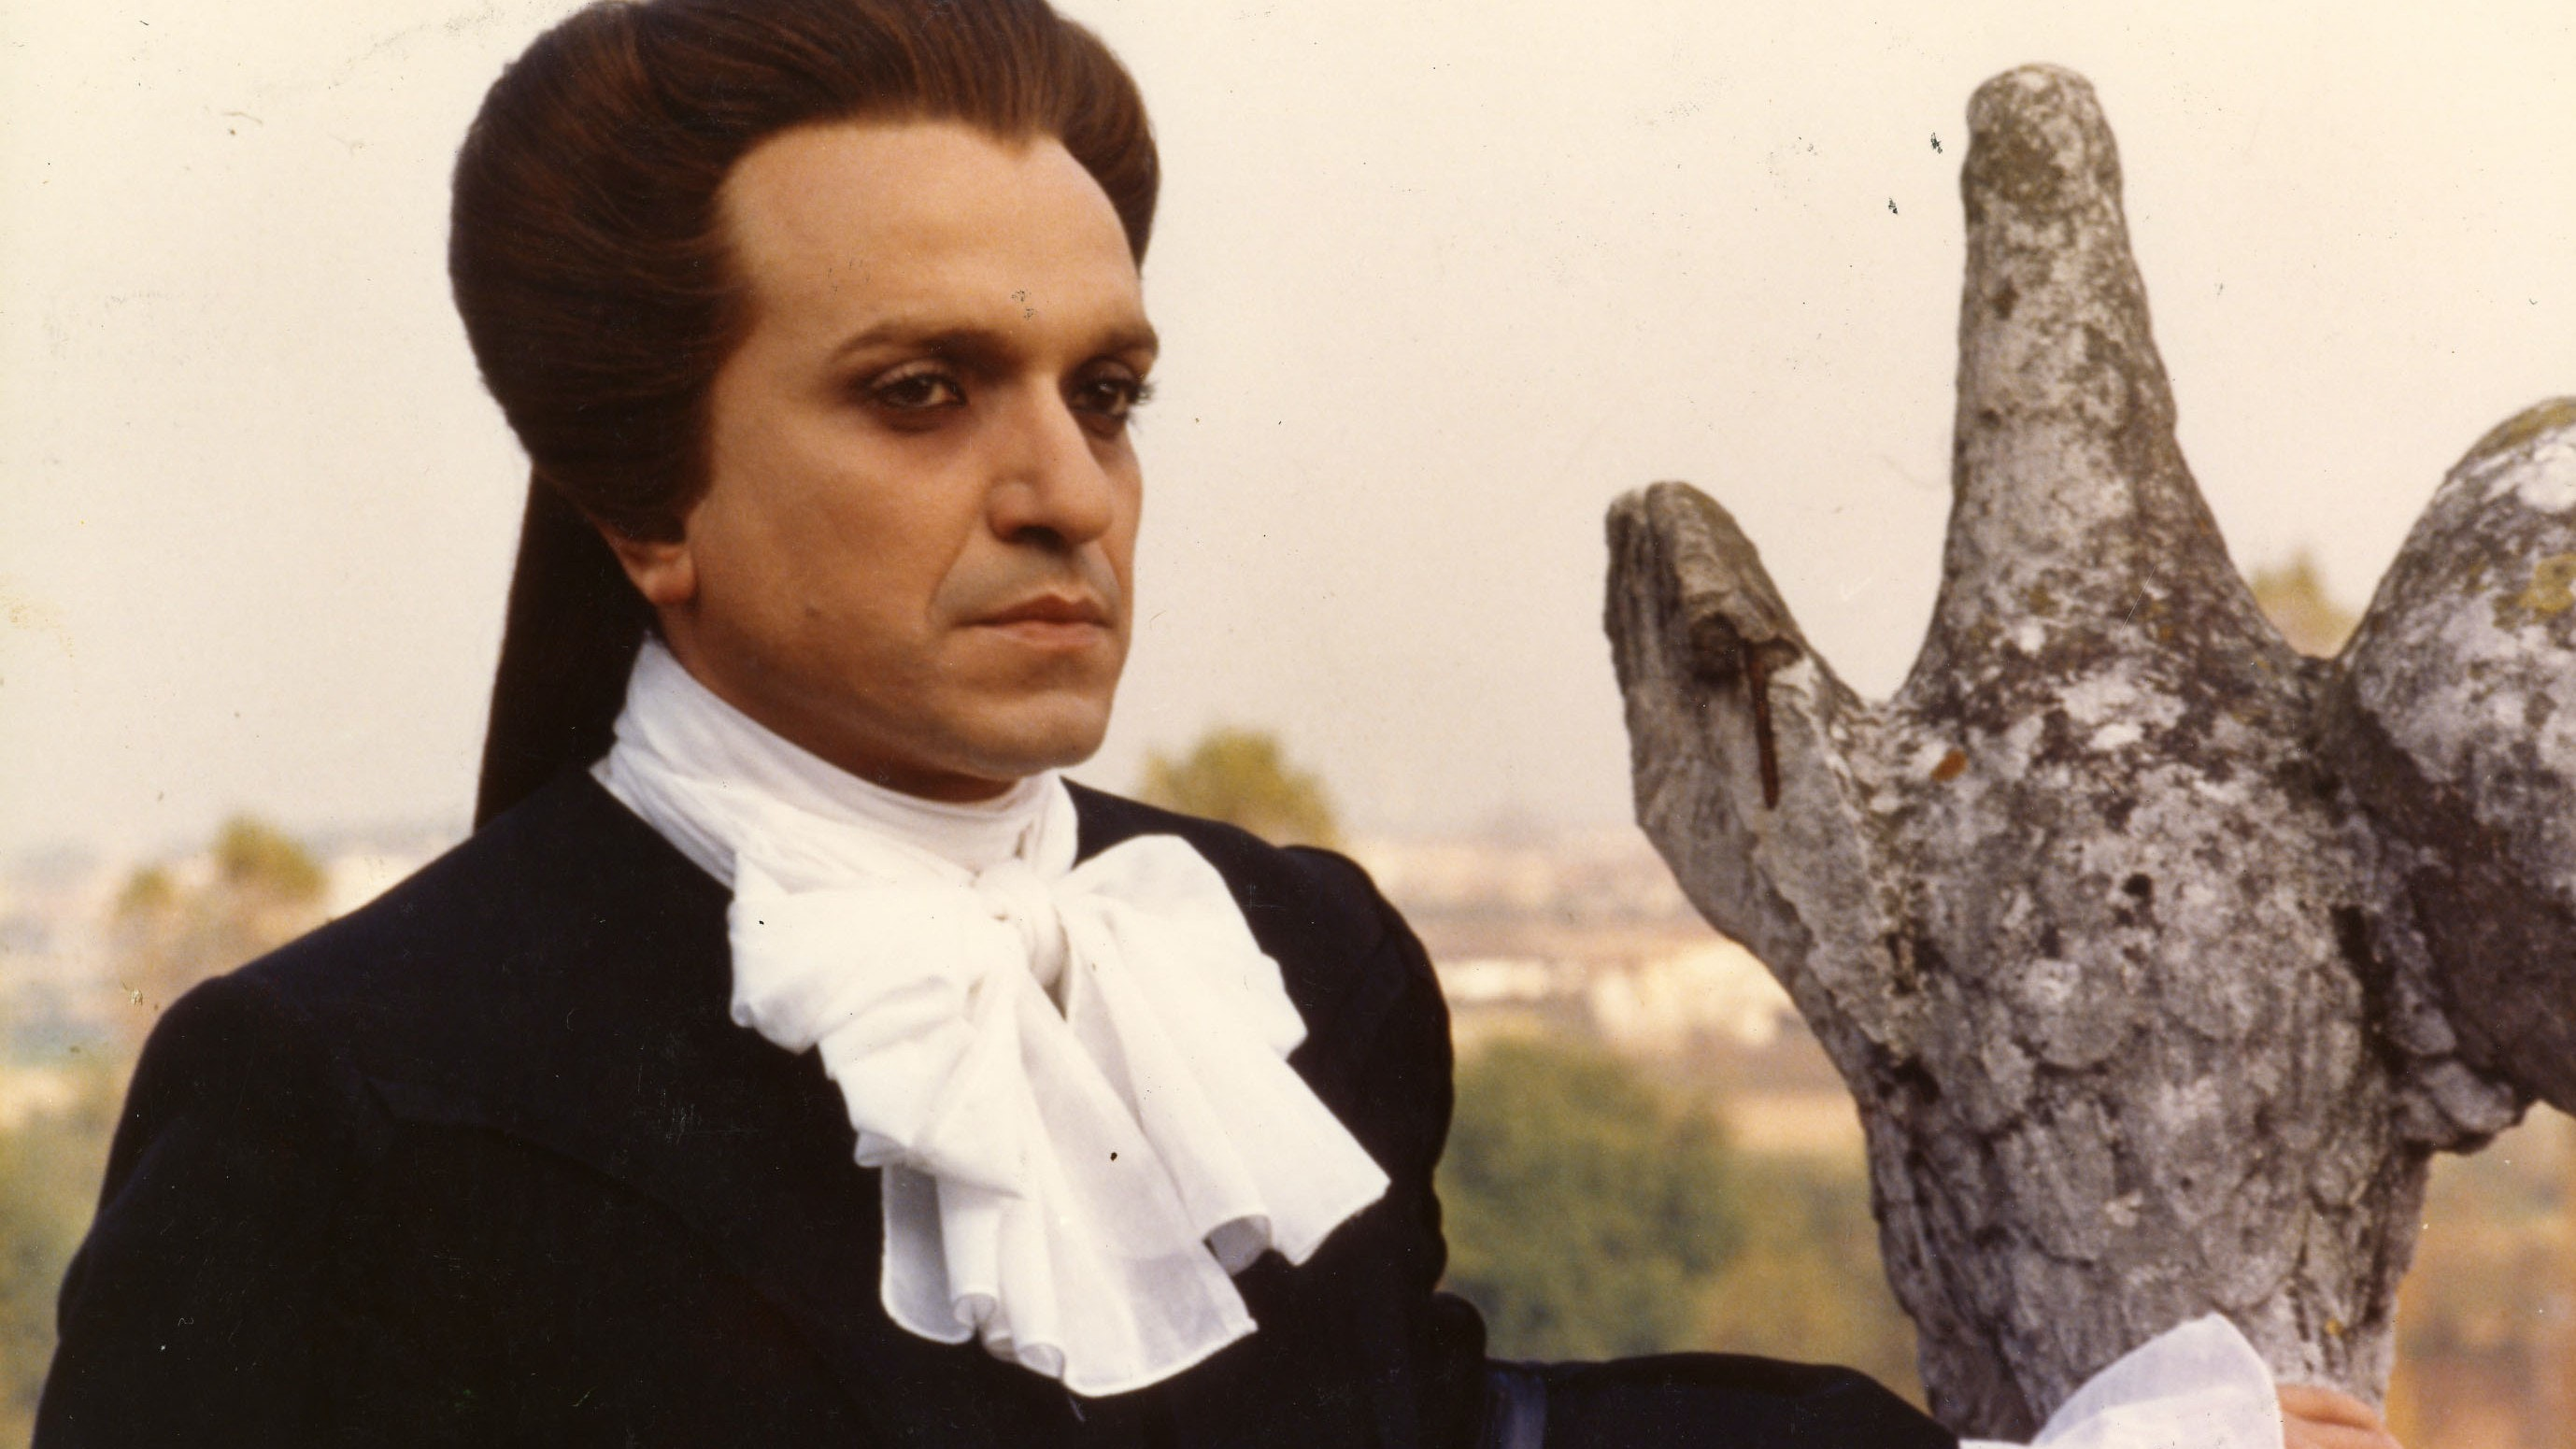 Don Giovanni by Mozart – A Film by Joseph Losey